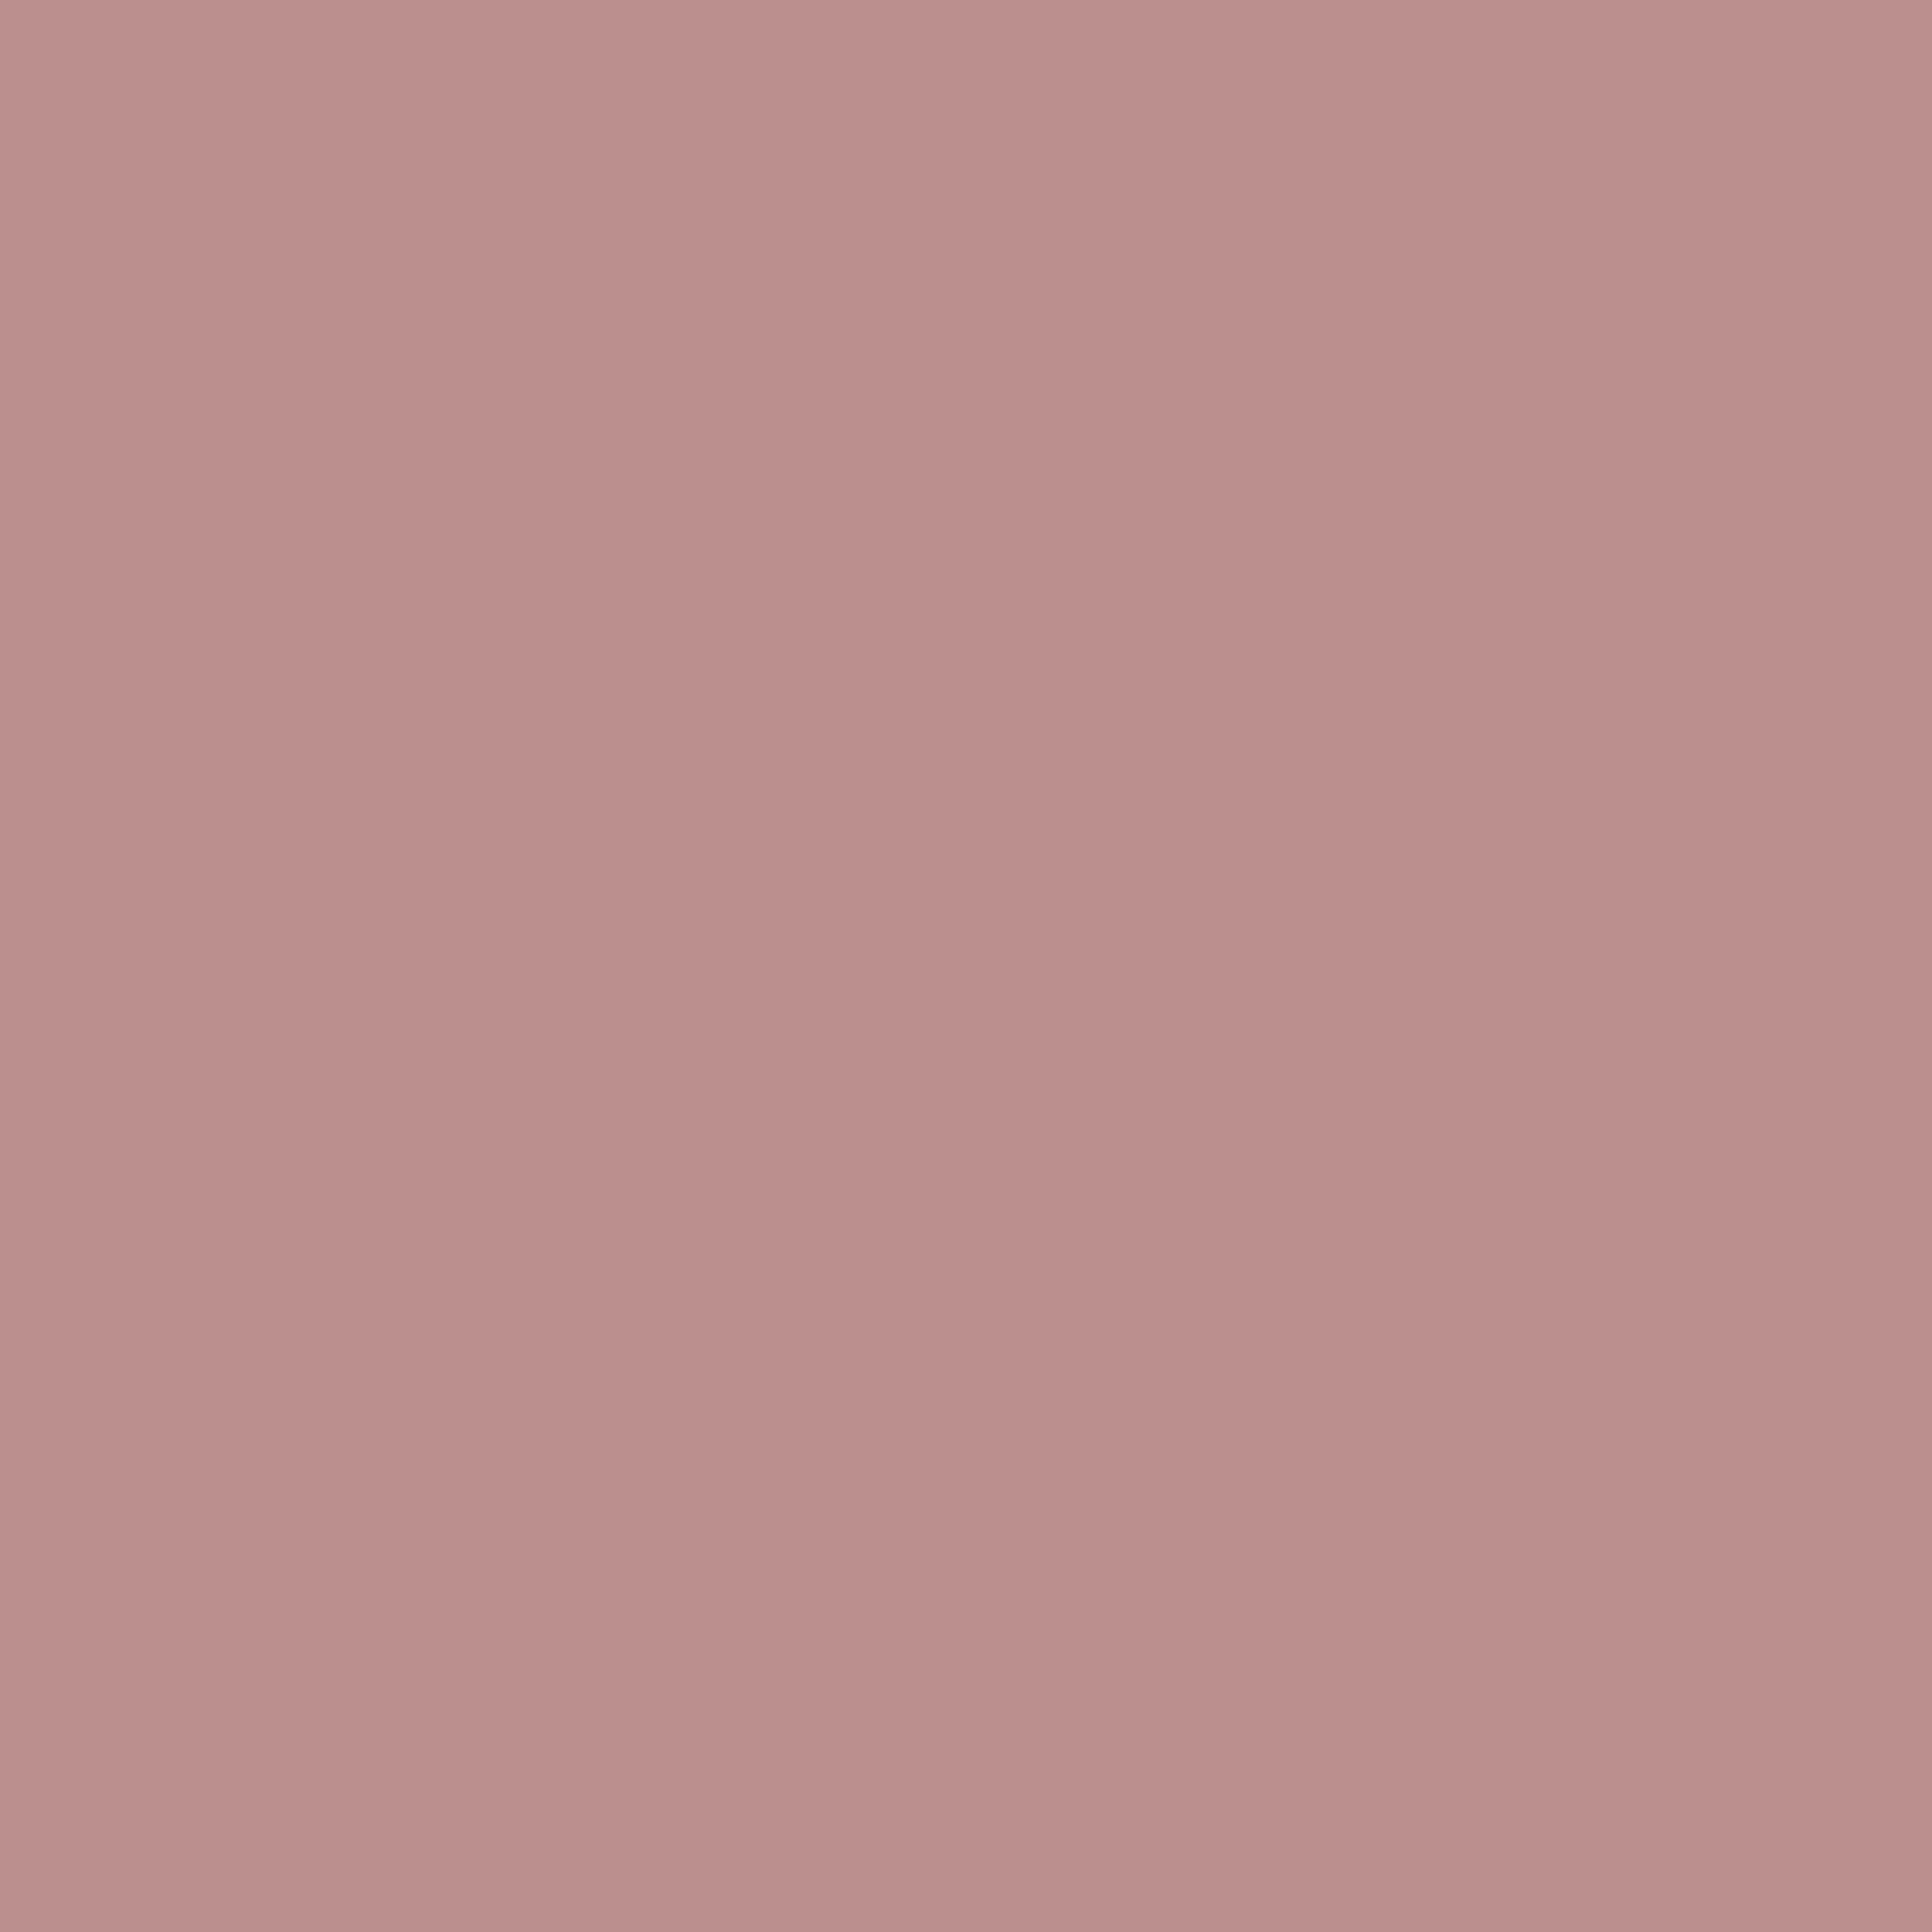 2732x2732 Rosy Brown Solid Color Background